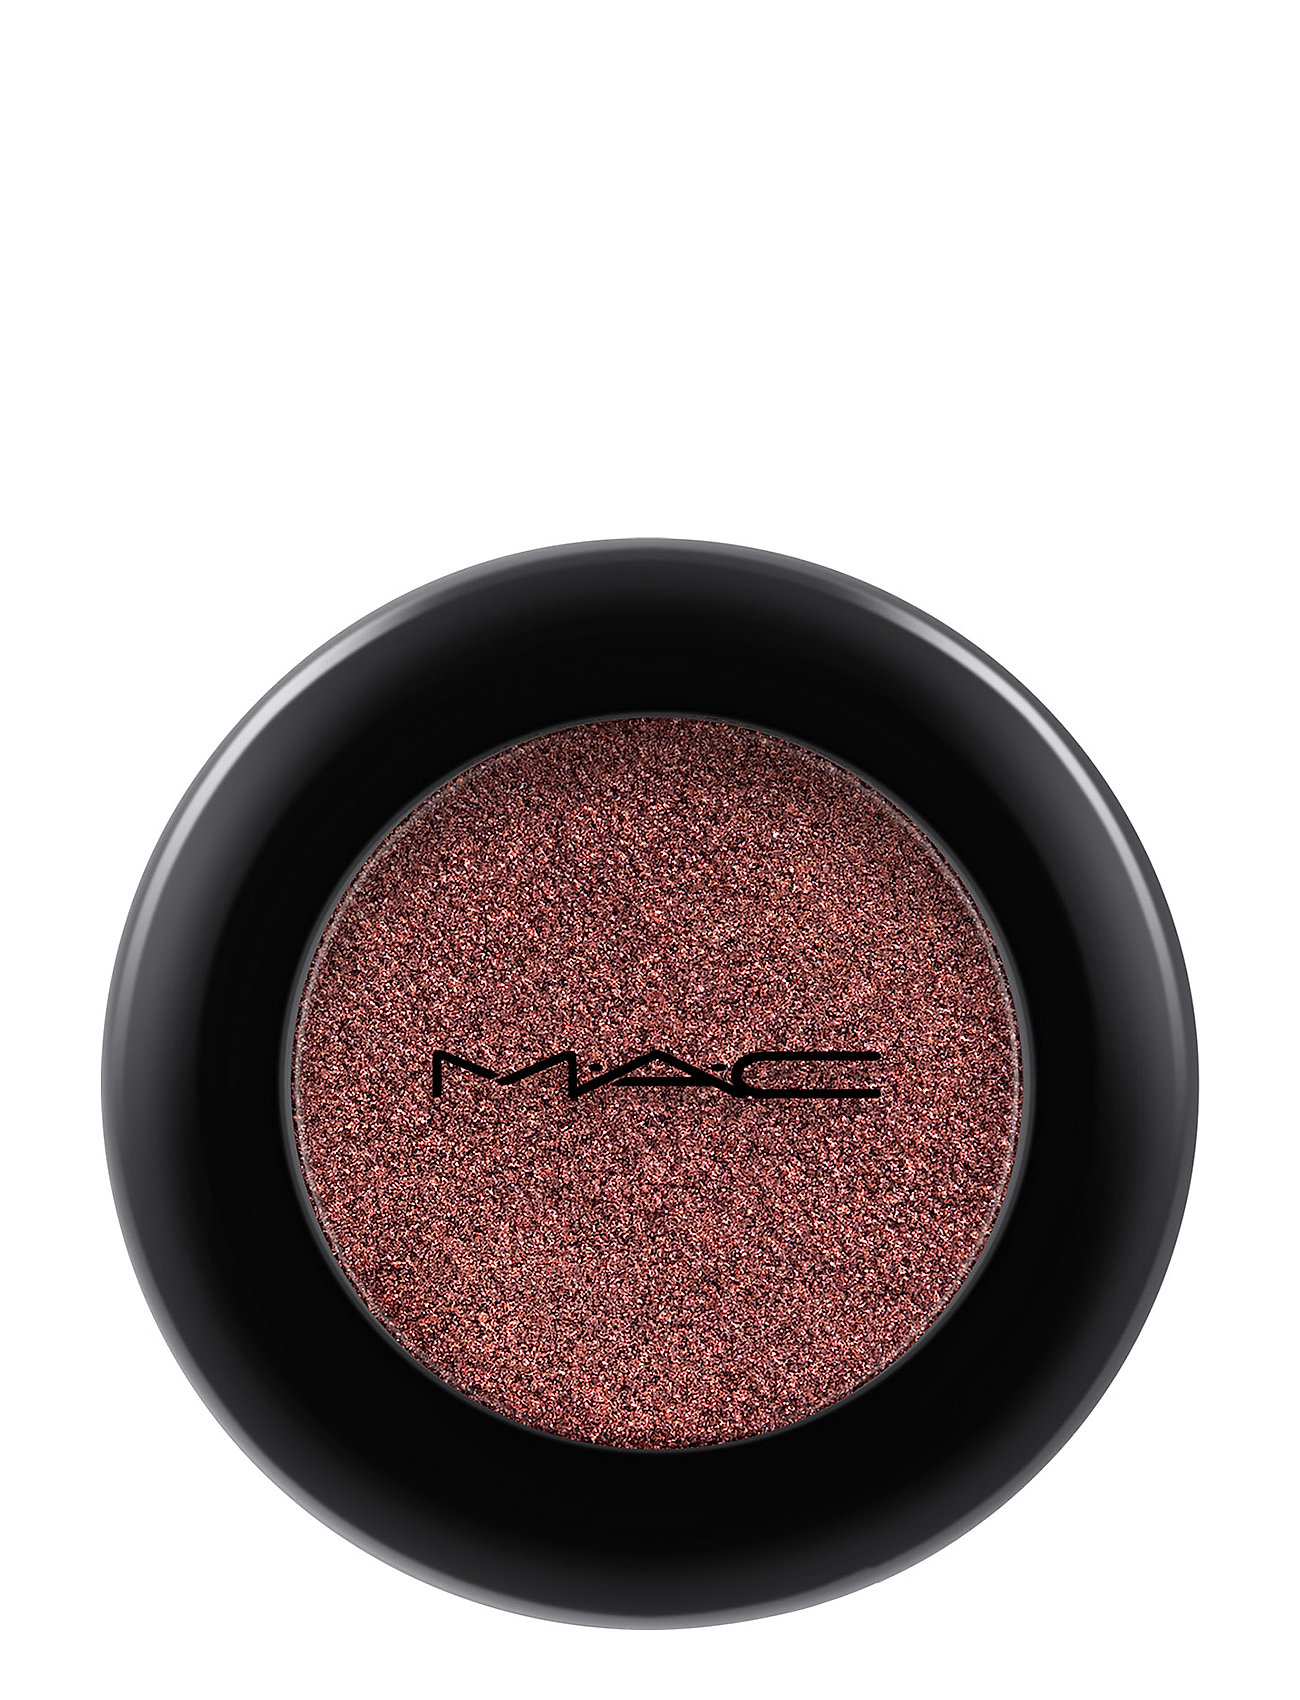 Image of Dazzleshadow Extreme Beauty WOMEN Makeup Eyes Eyeshadow - Not Palettes Rød M.A.C. (3366815315)